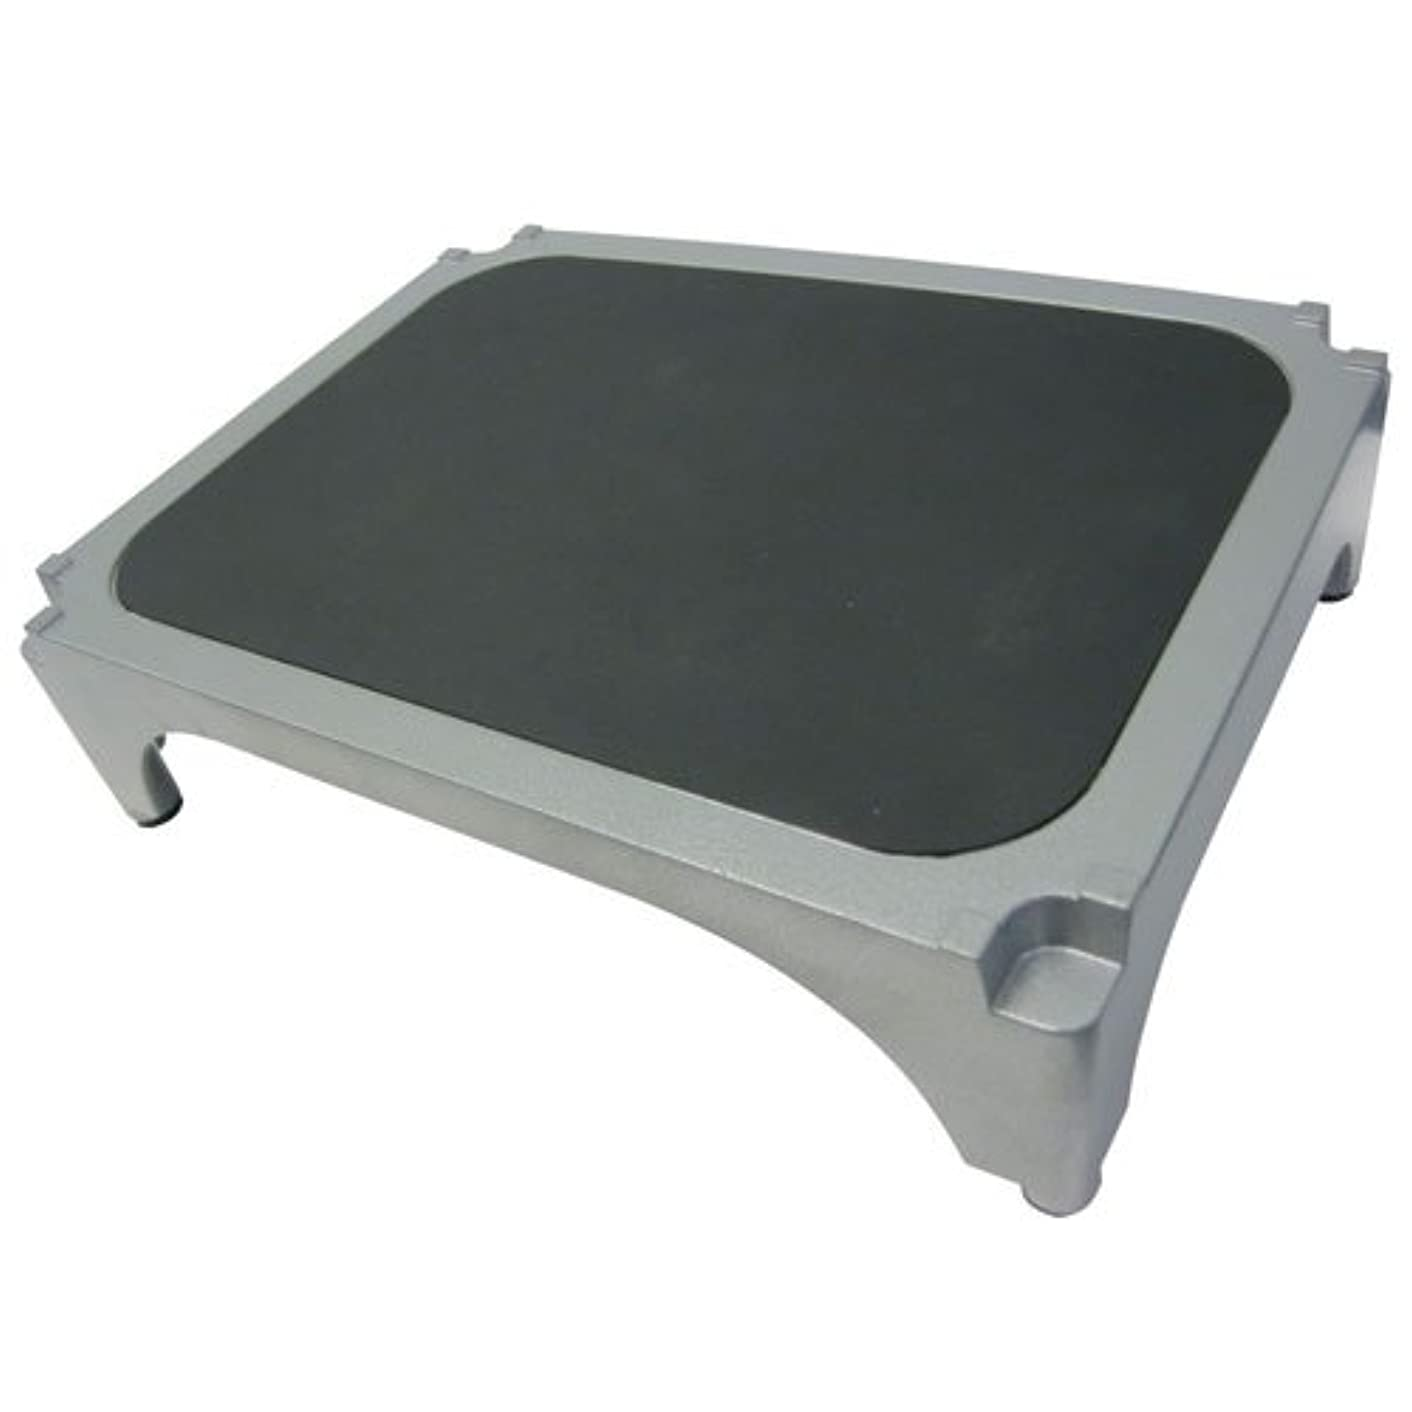 Imperial Surgical OR-36363 Aluminum Stackable Step Stool with Black Mat - Pkg Qty 4, (Sold in packages of 4)